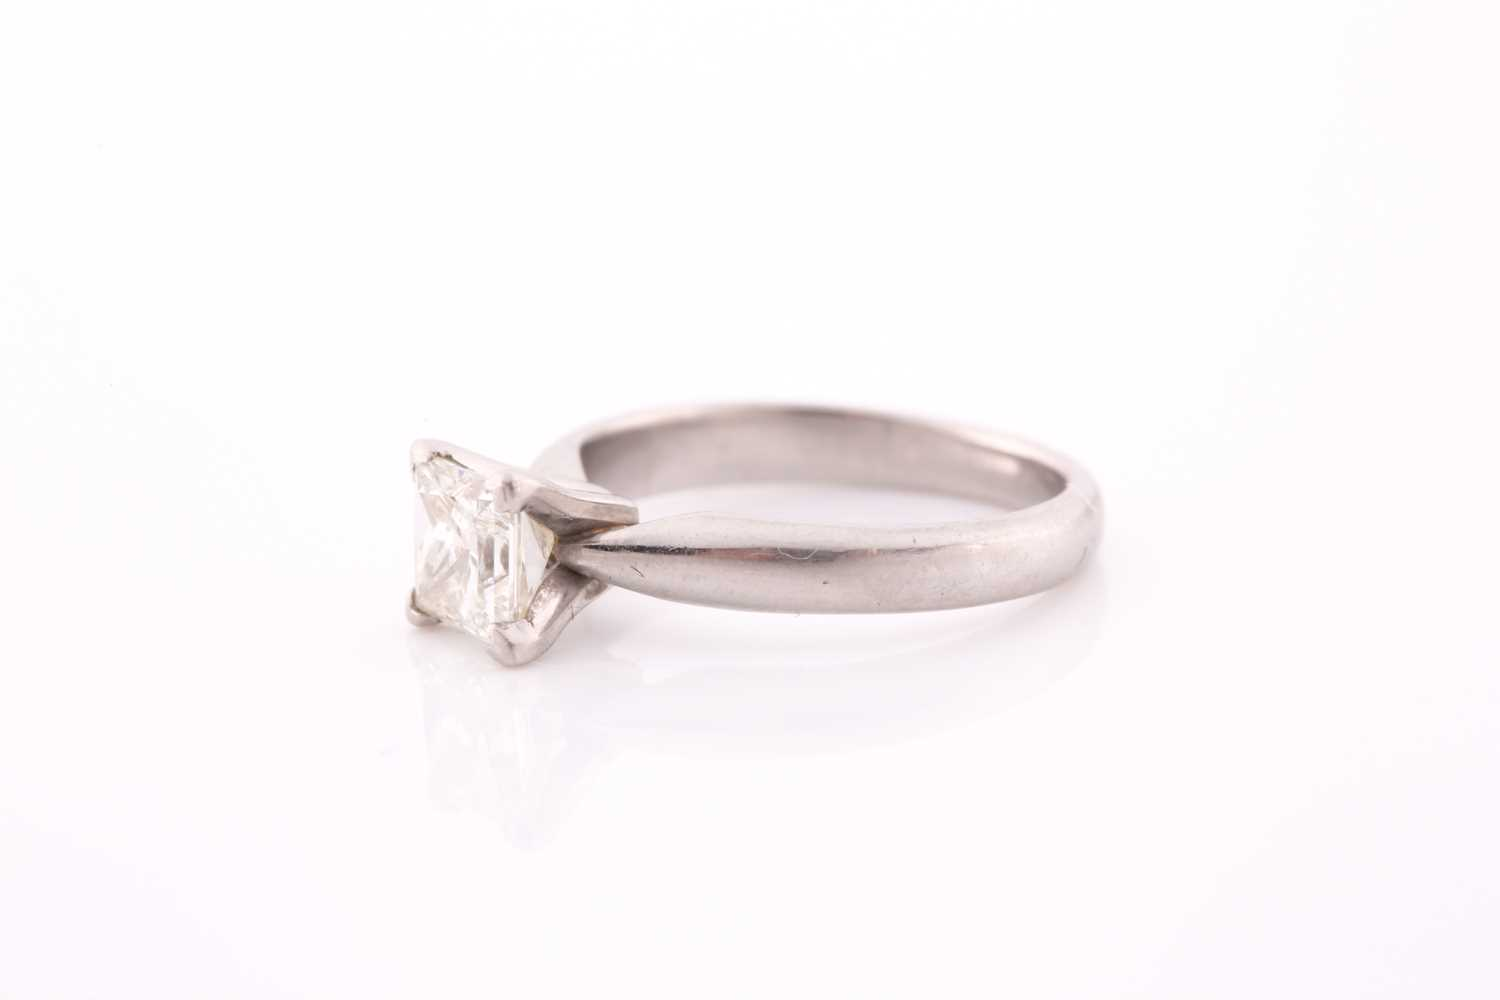 A platinum and diamond ring, set with a princess-cut diamond of approximately 0.80 carats, - Image 3 of 4